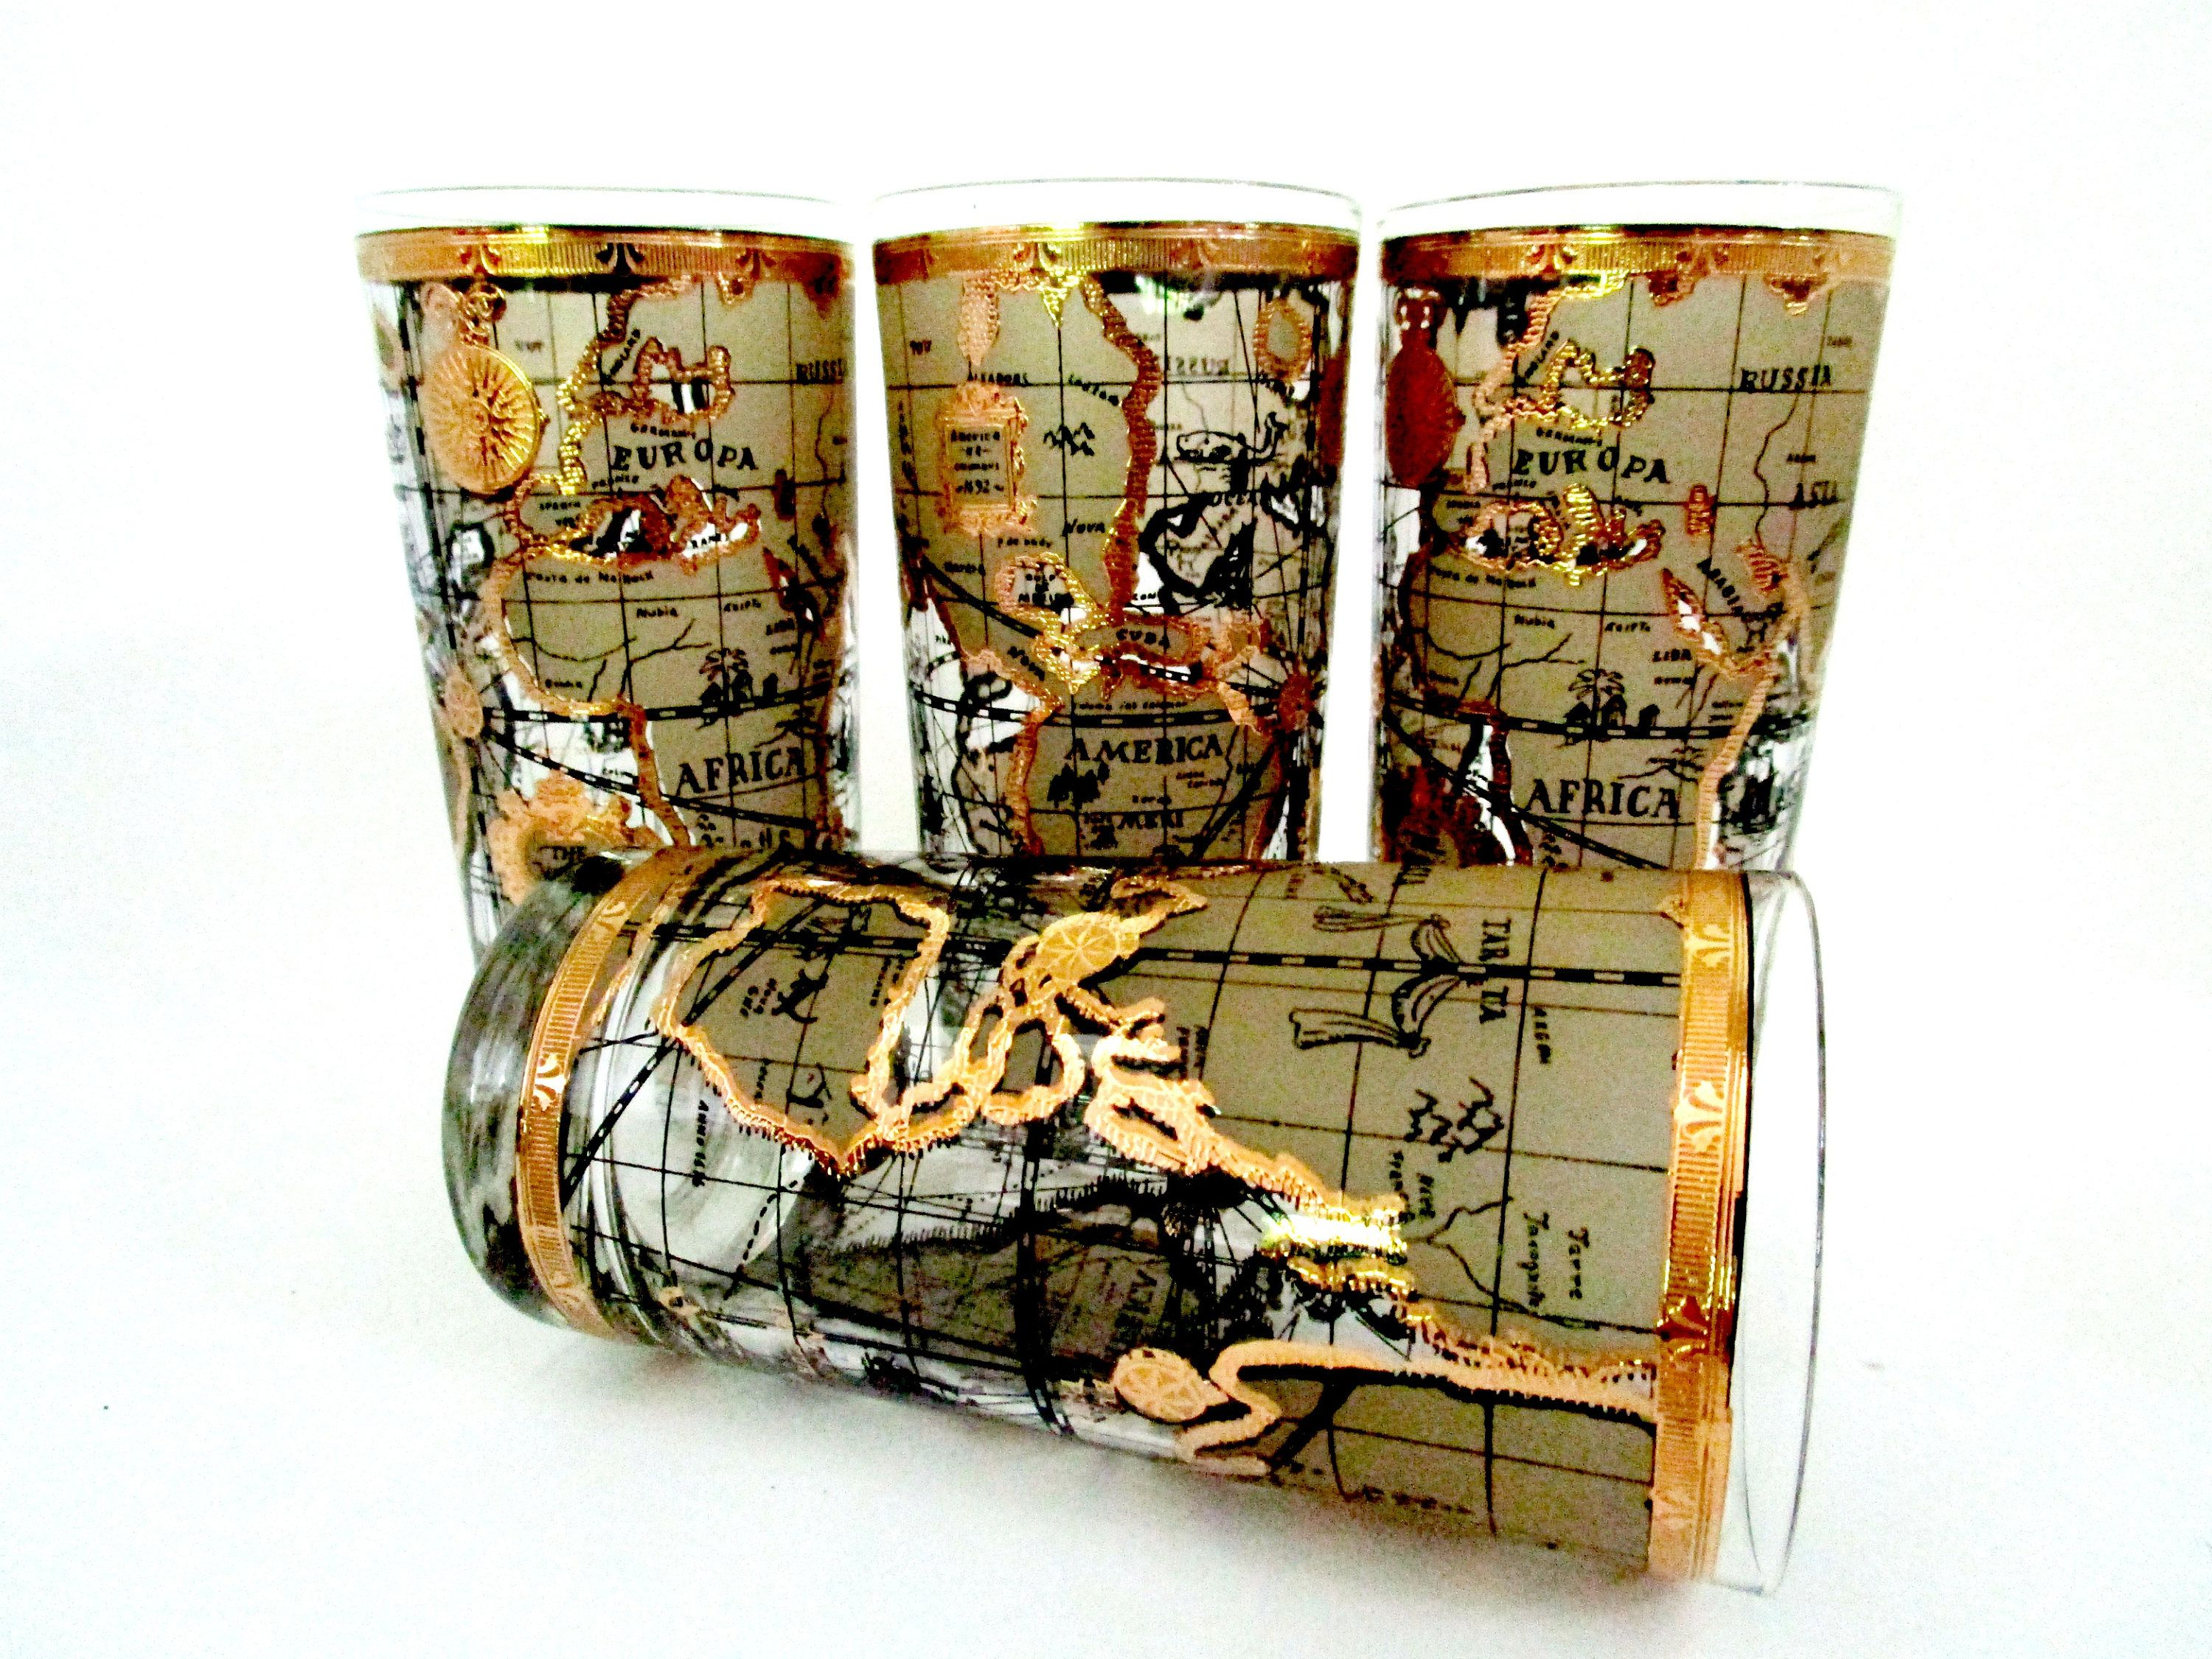 Mid century barware set of 4 cera world map barware world map mid century barware set of 4 cera world map barware world map highballs gumiabroncs Image collections